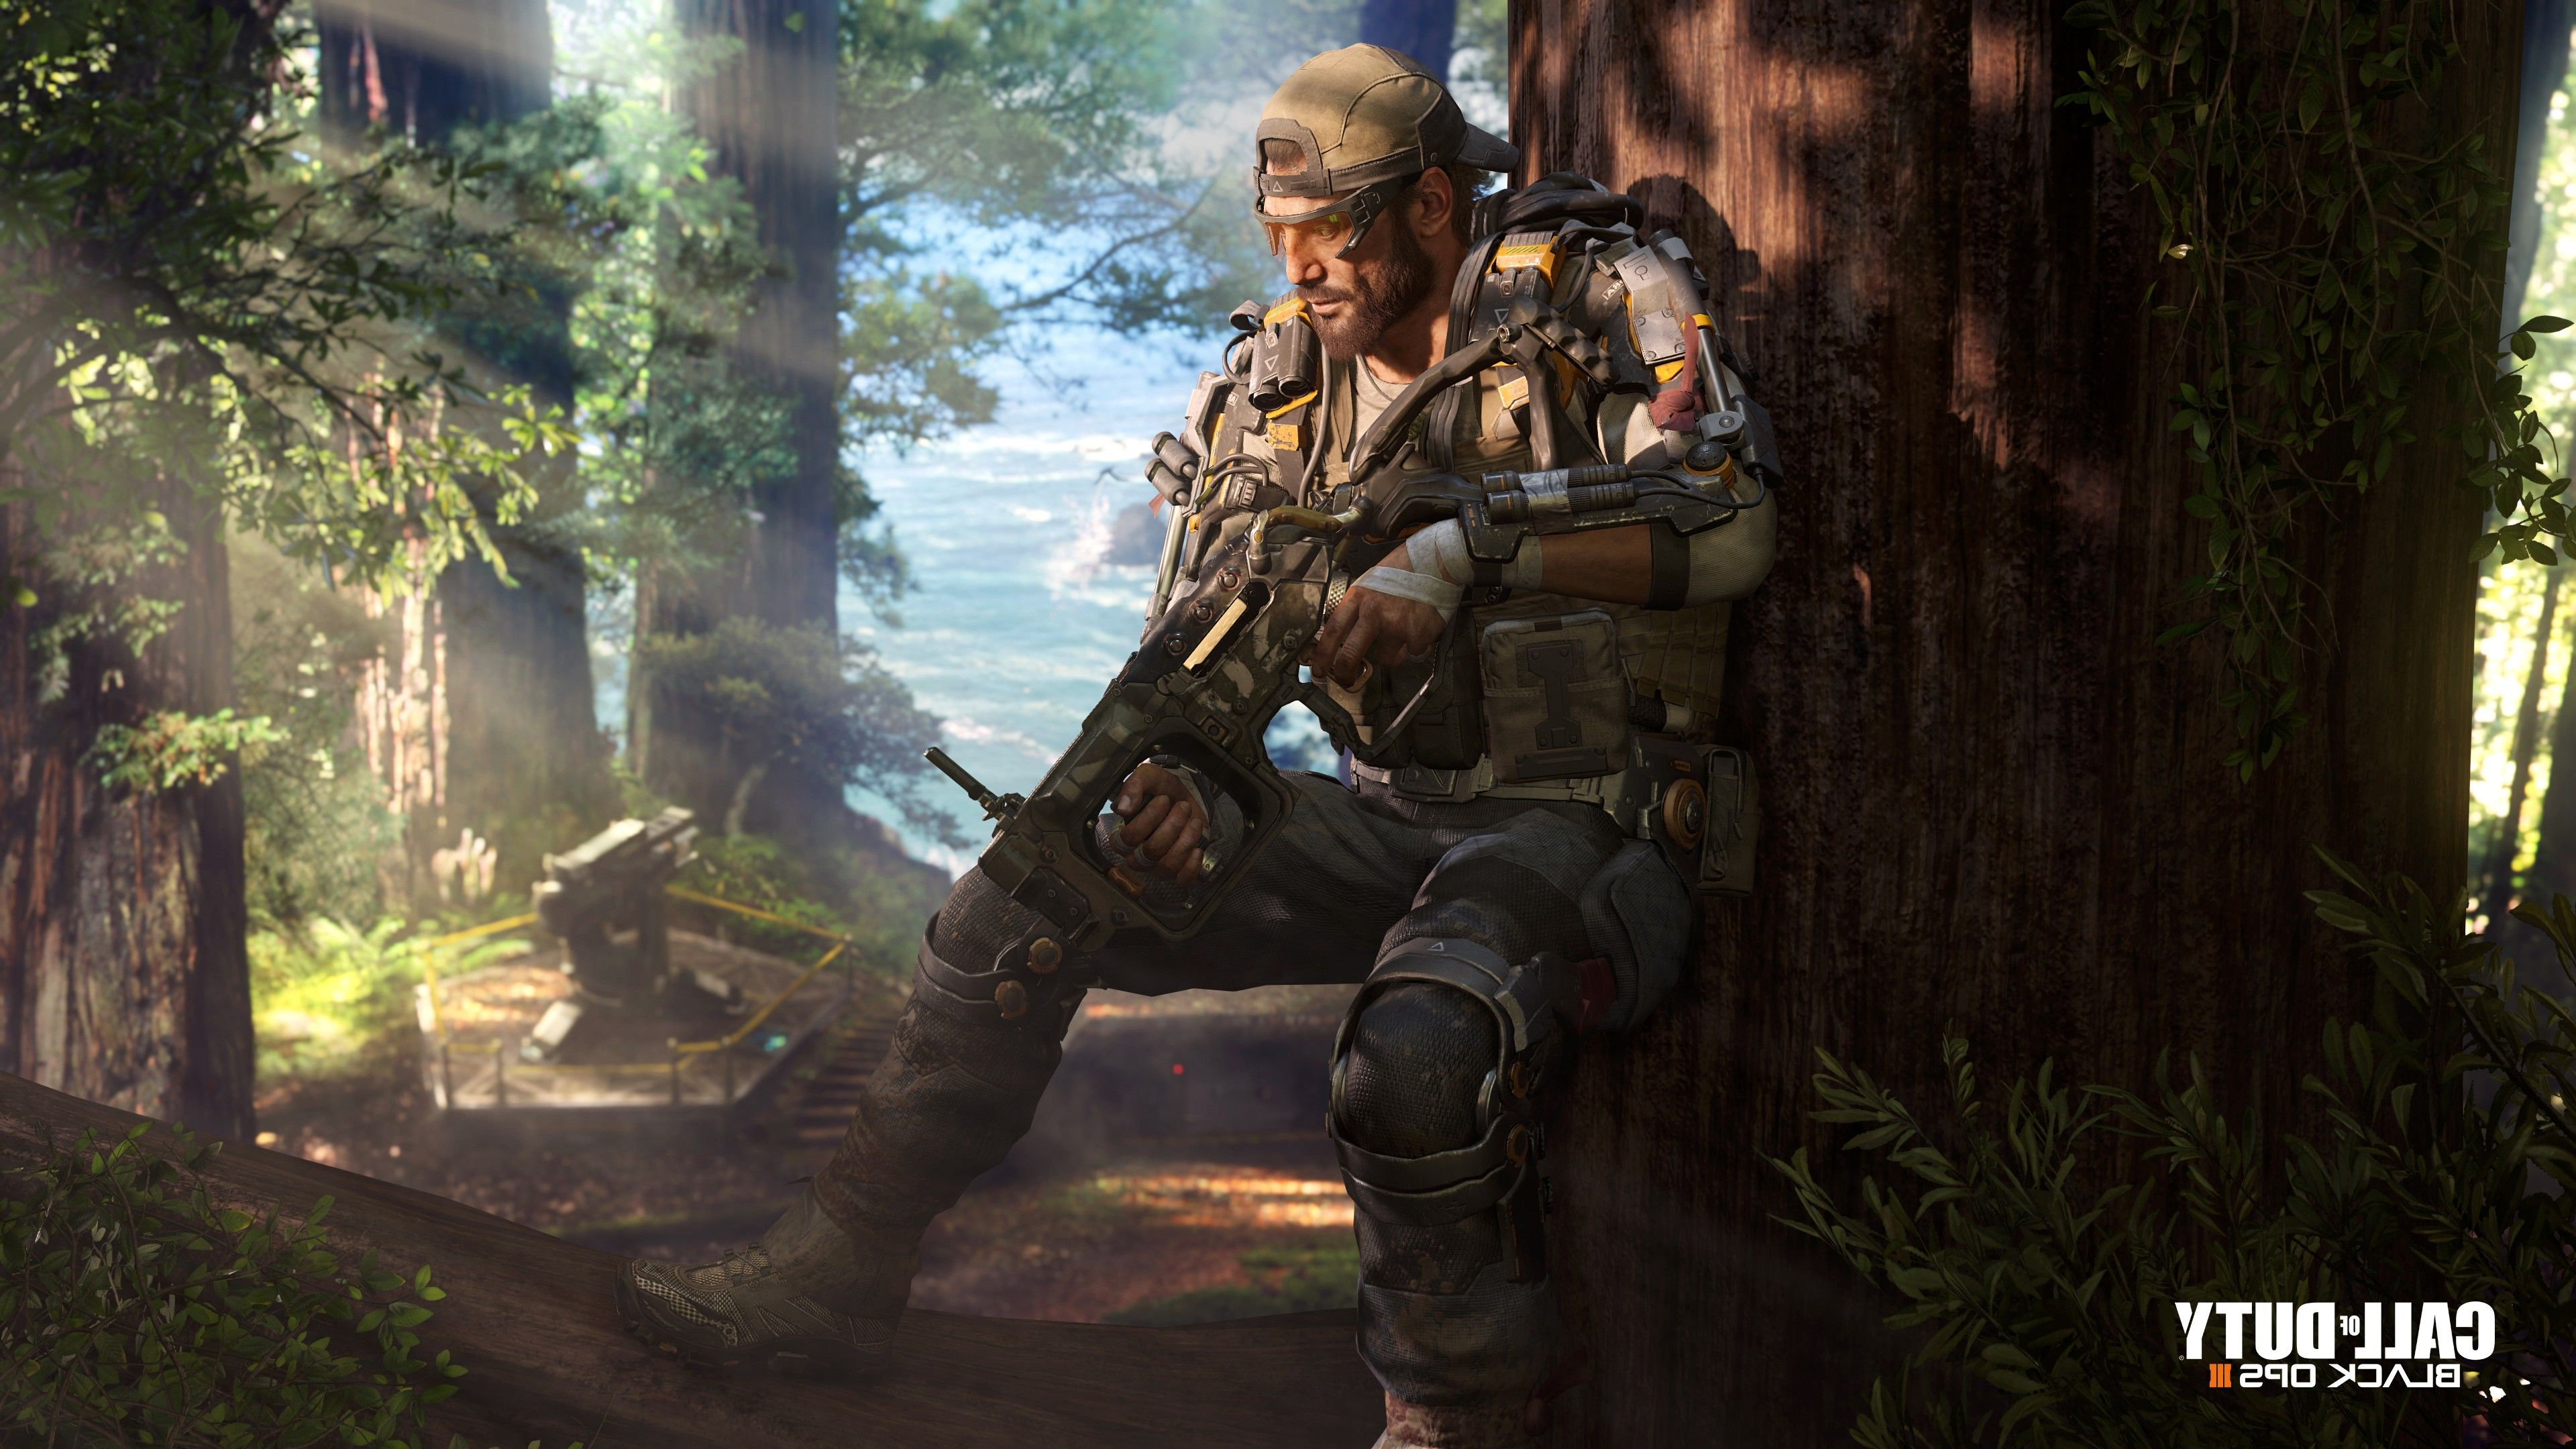 Call Of Duty Black Ops 3 Wallpapers Top Free Call Of Duty Black Ops 3 Backgrounds Wallpaperaccess